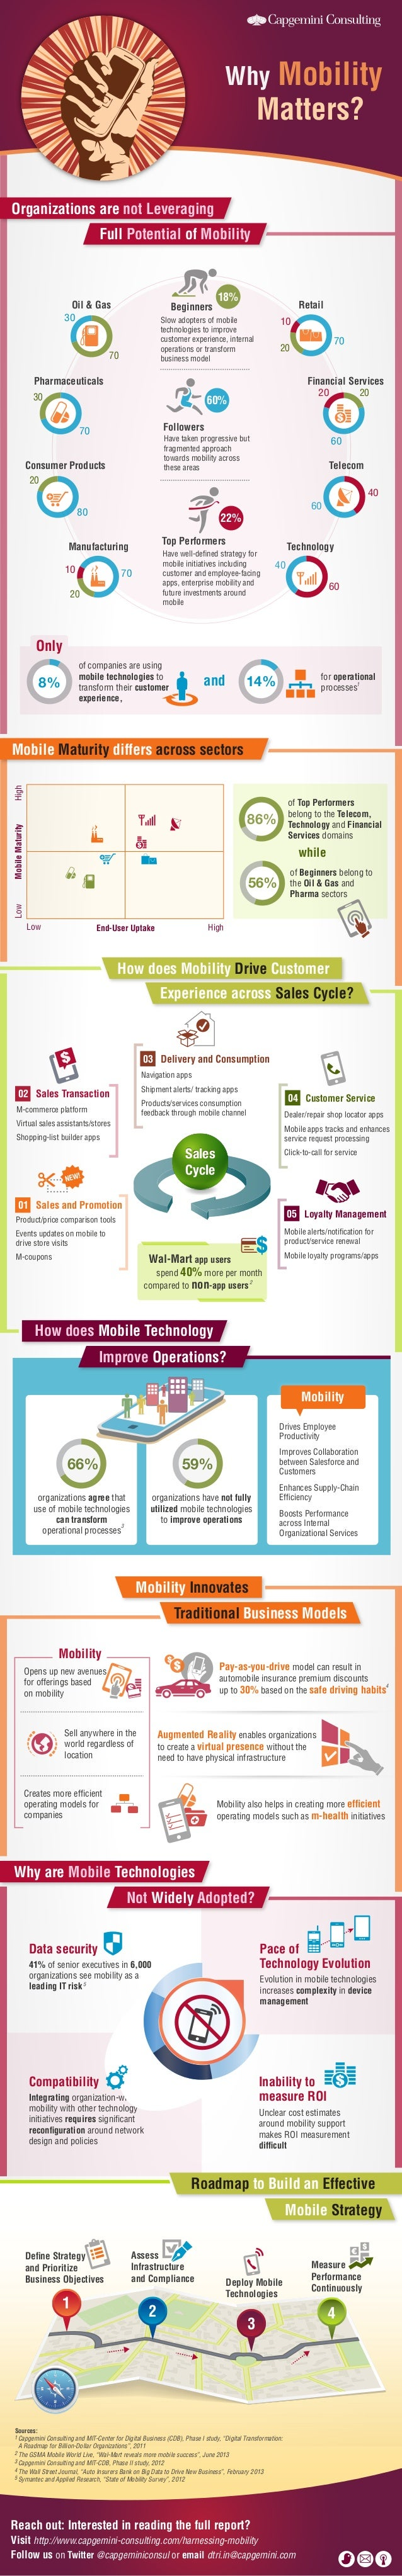 Mobility Matters?  Why  Organizations are not Leveraging Full Potential of Mobility  Oil & Gas  Beginners  30  18%  Retail...